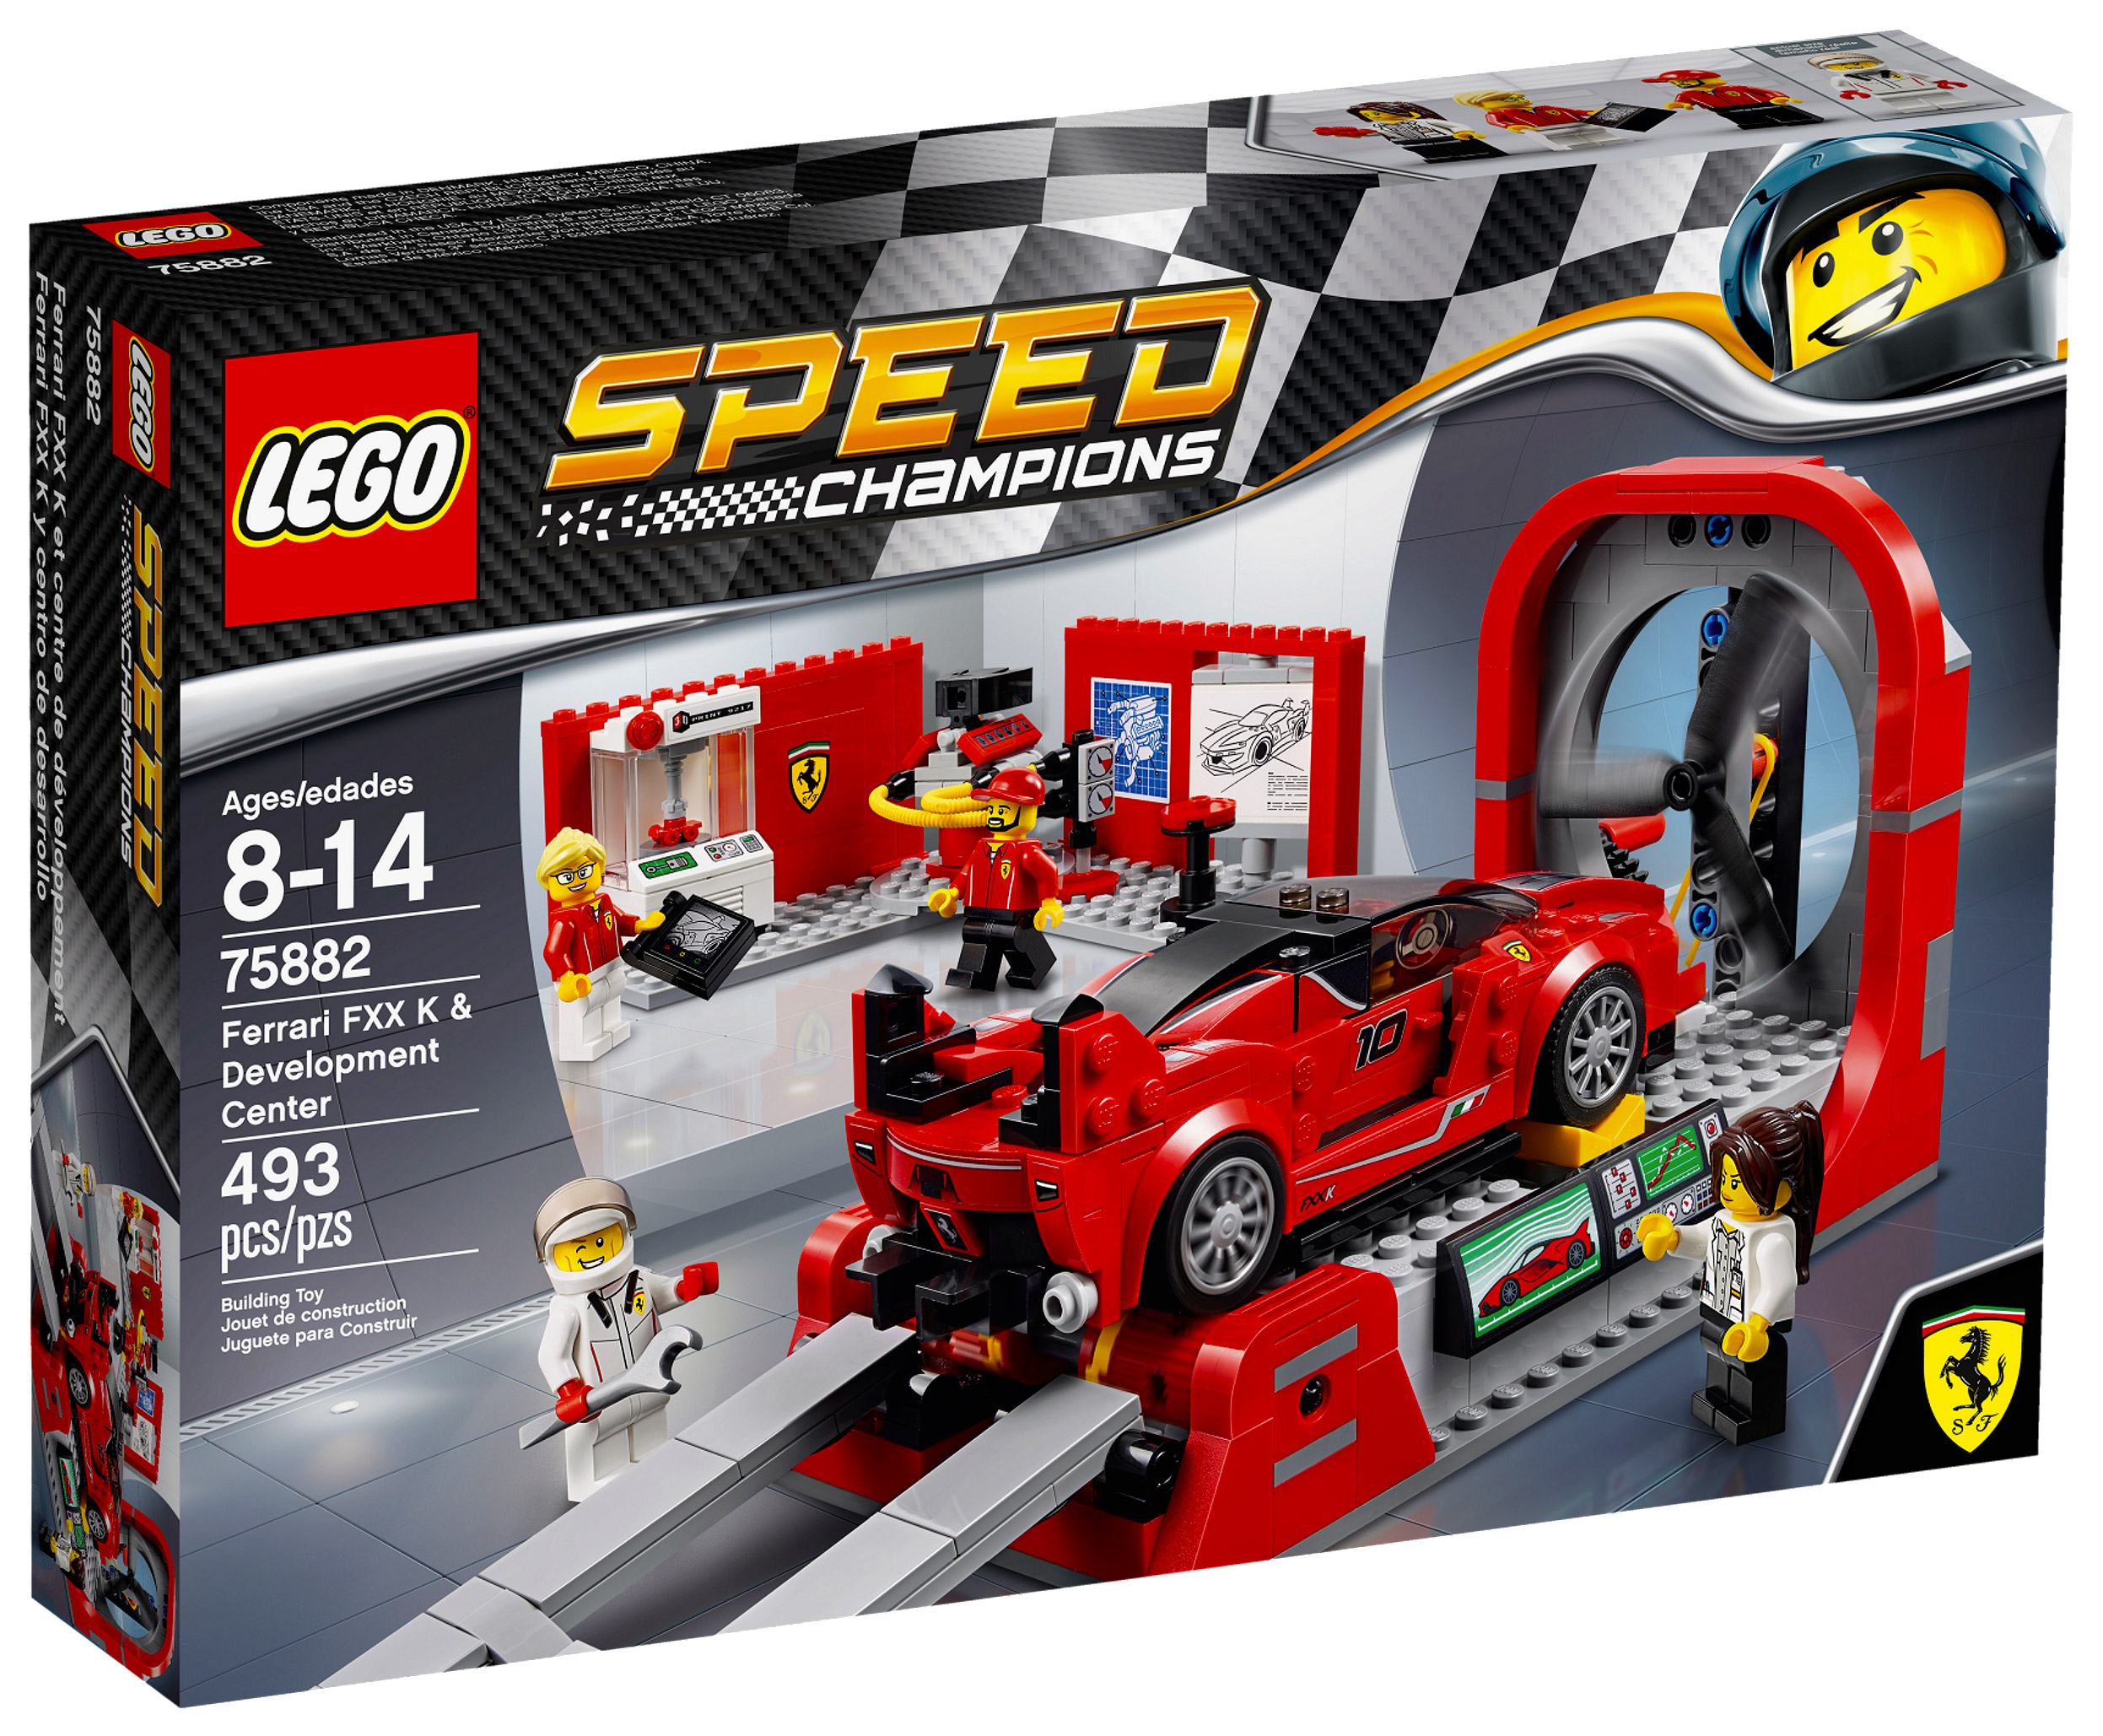 lego speed champions 75882 pas cher le centre de d veloppement de la ferrari fxx k. Black Bedroom Furniture Sets. Home Design Ideas